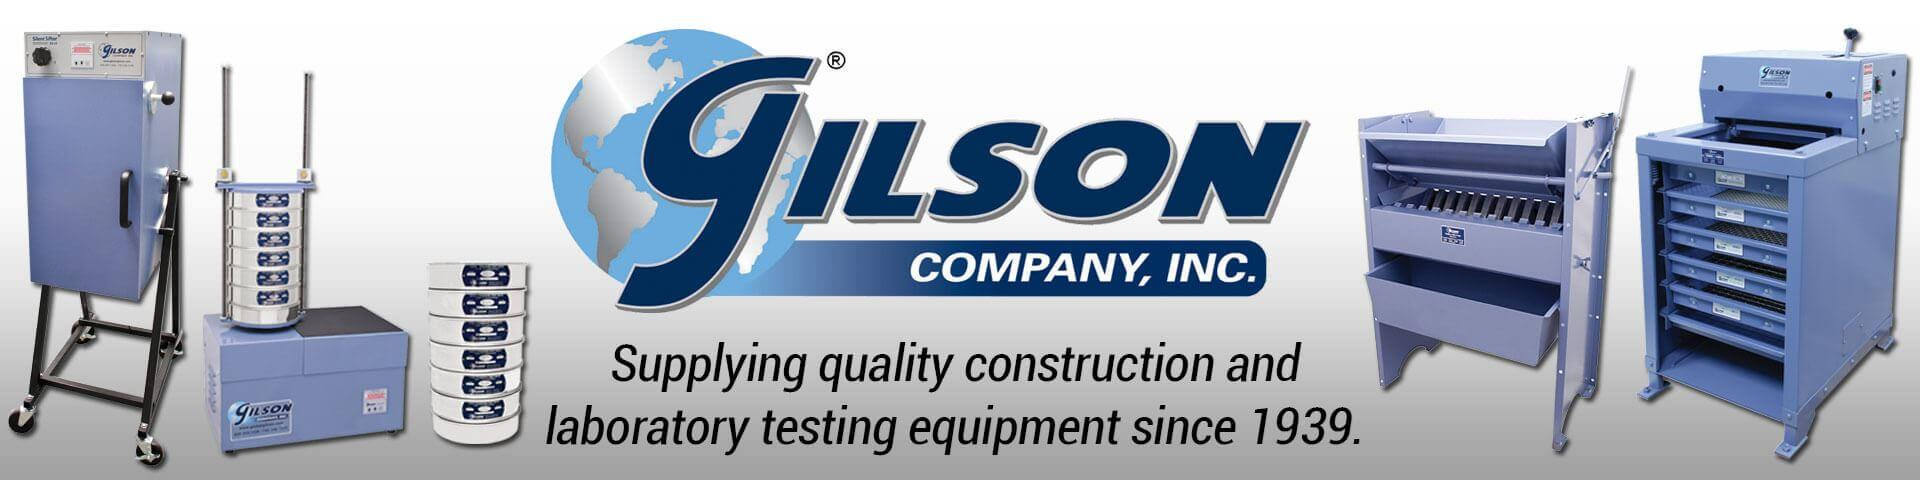 Gilson Company, Inc. - Supplying quality construction and laboratory testing equipment since 1939